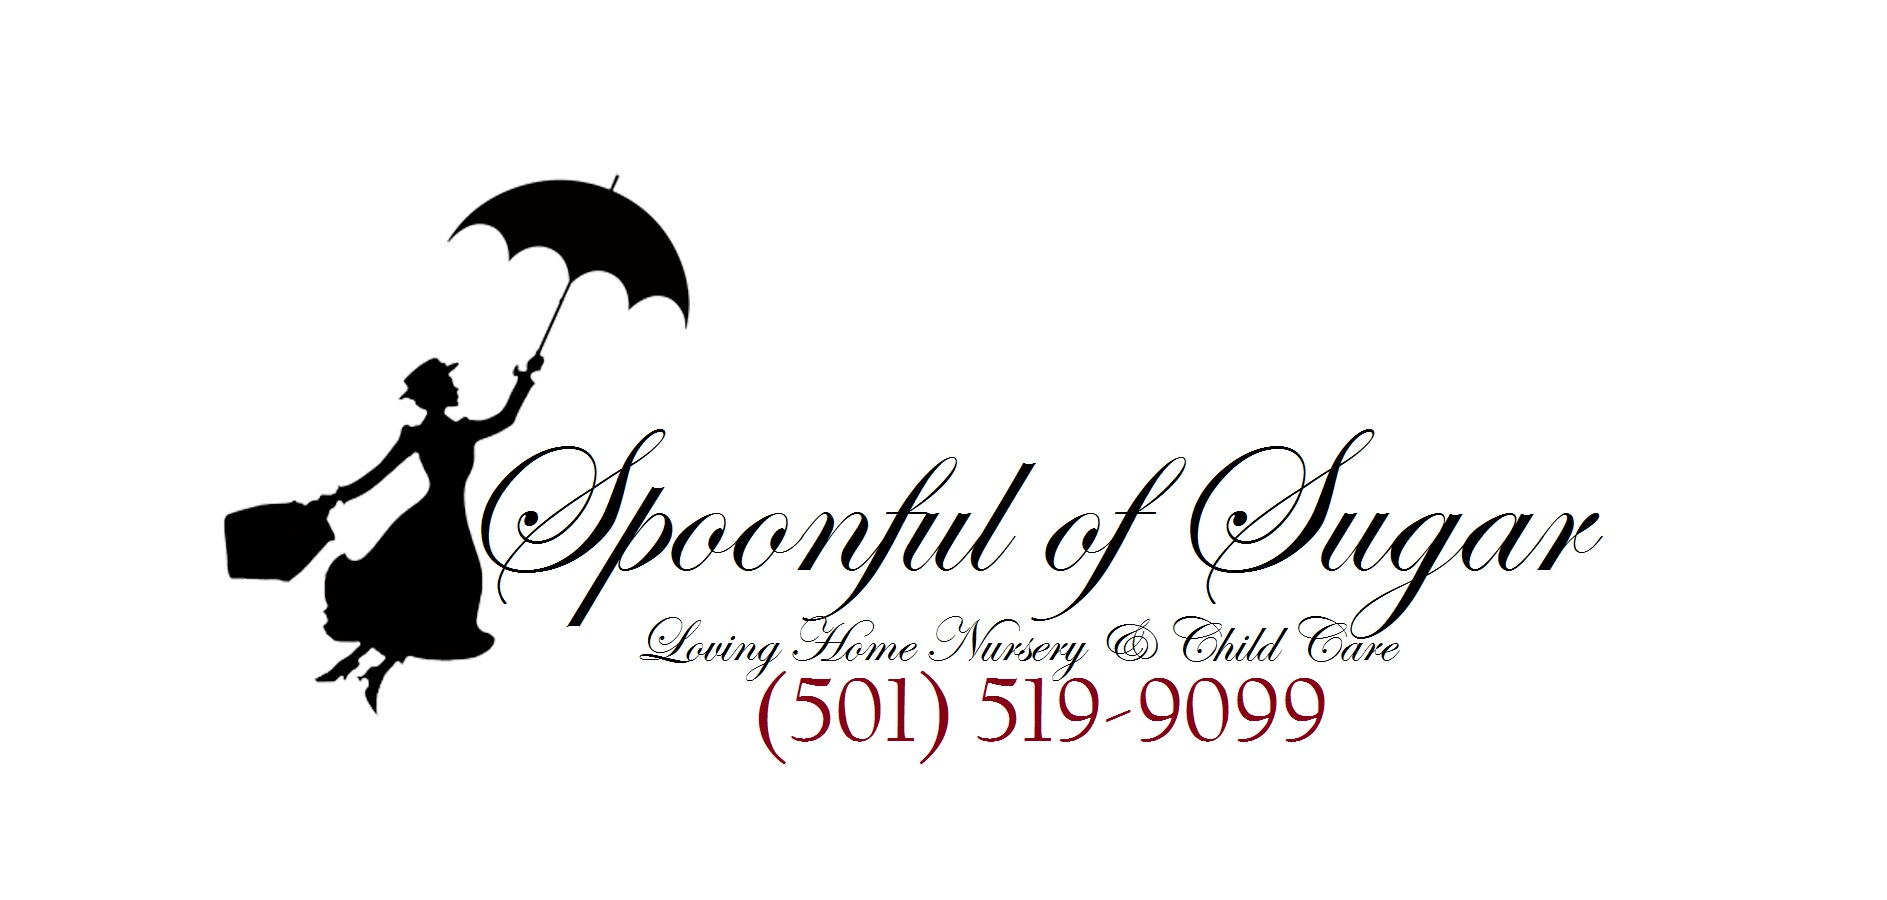 Spoonful Of Sugar Home Nursery & Child Care